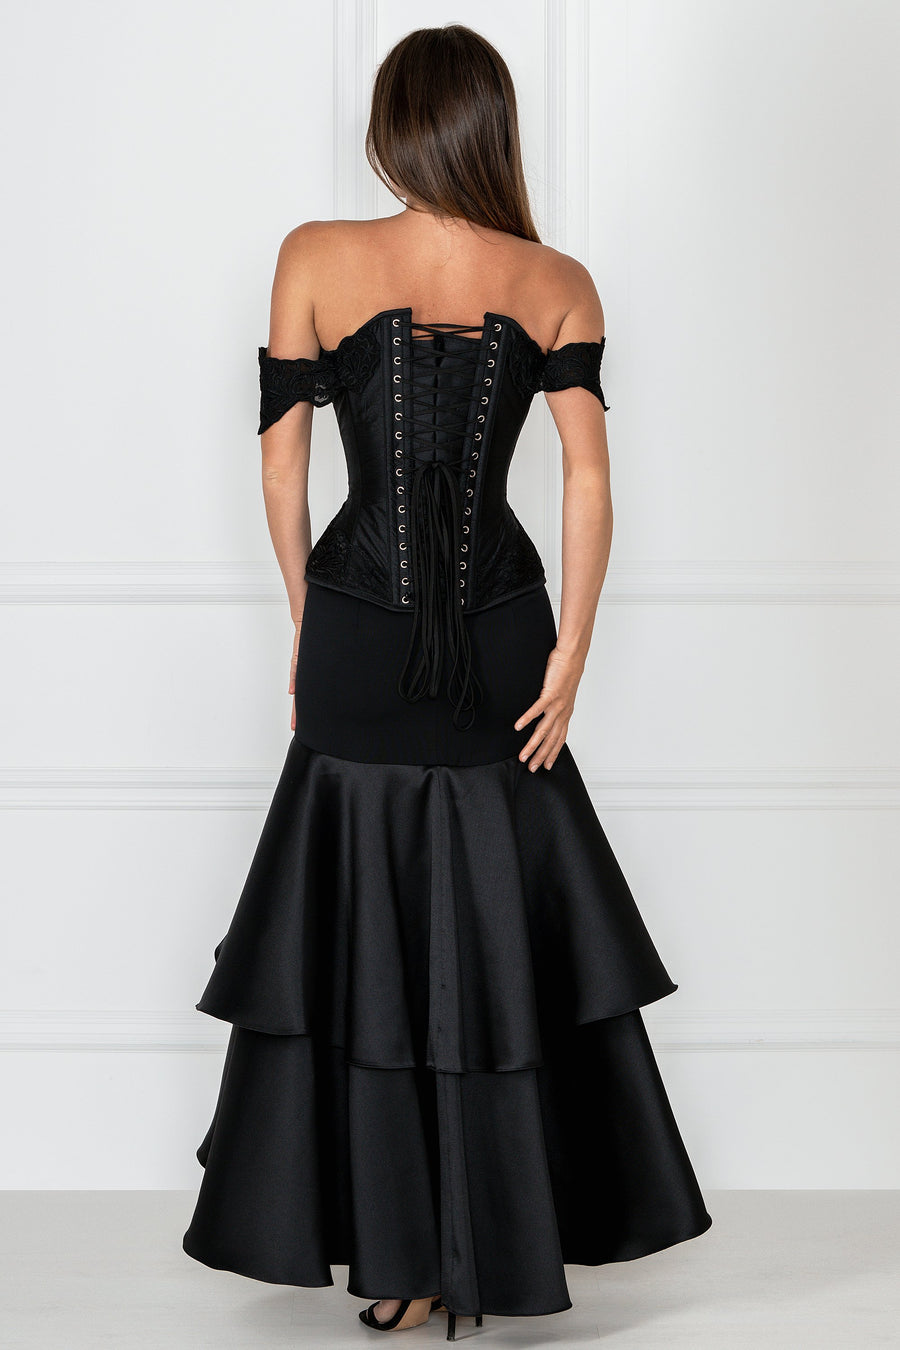 Black Longline Corset Top with Lace Cap Sleeve